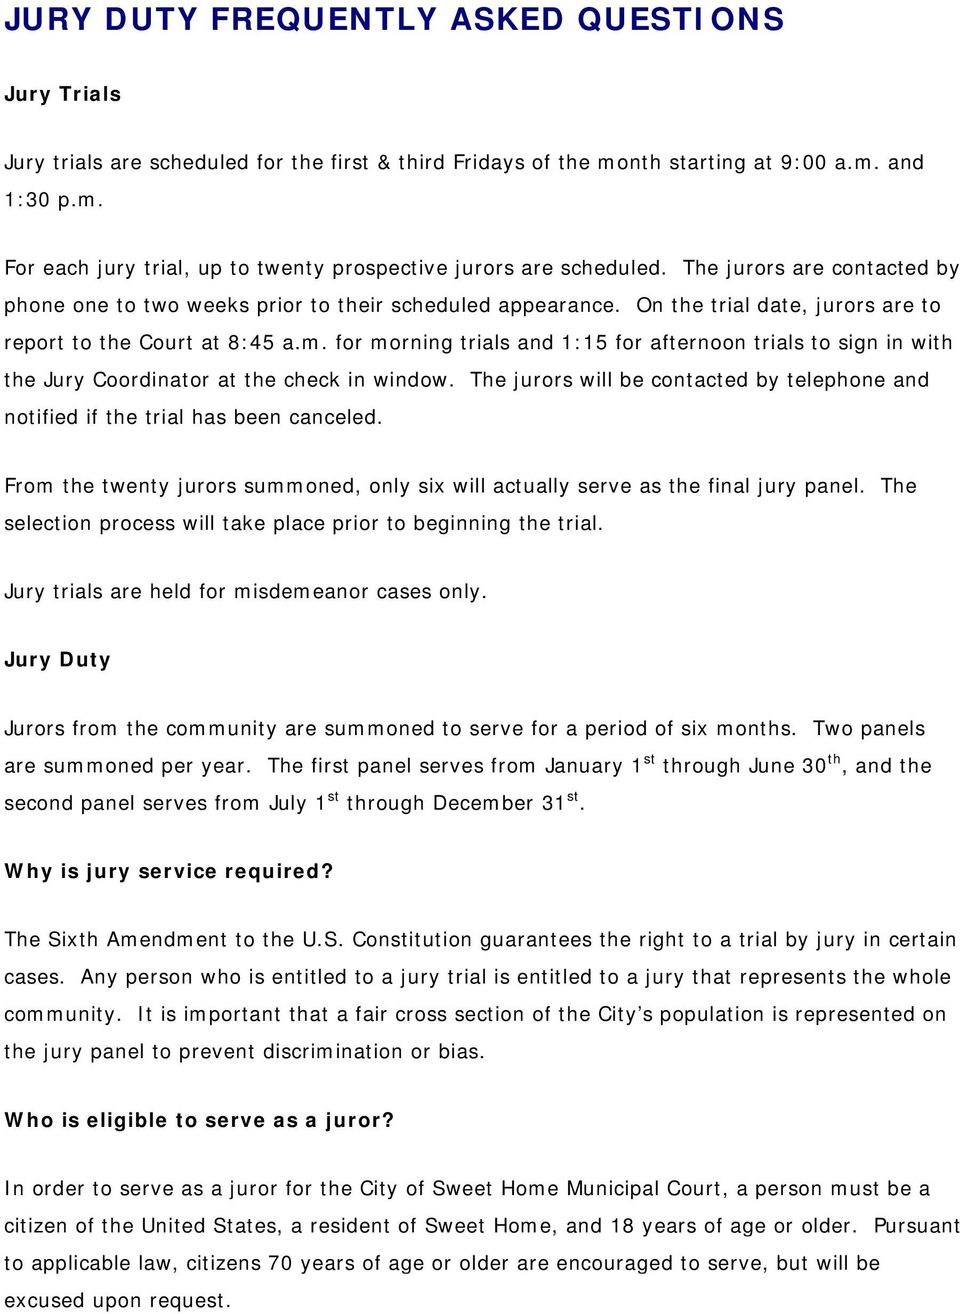 JURY DUTY FREQUENTLY ASKED QUESTIONS - PDF